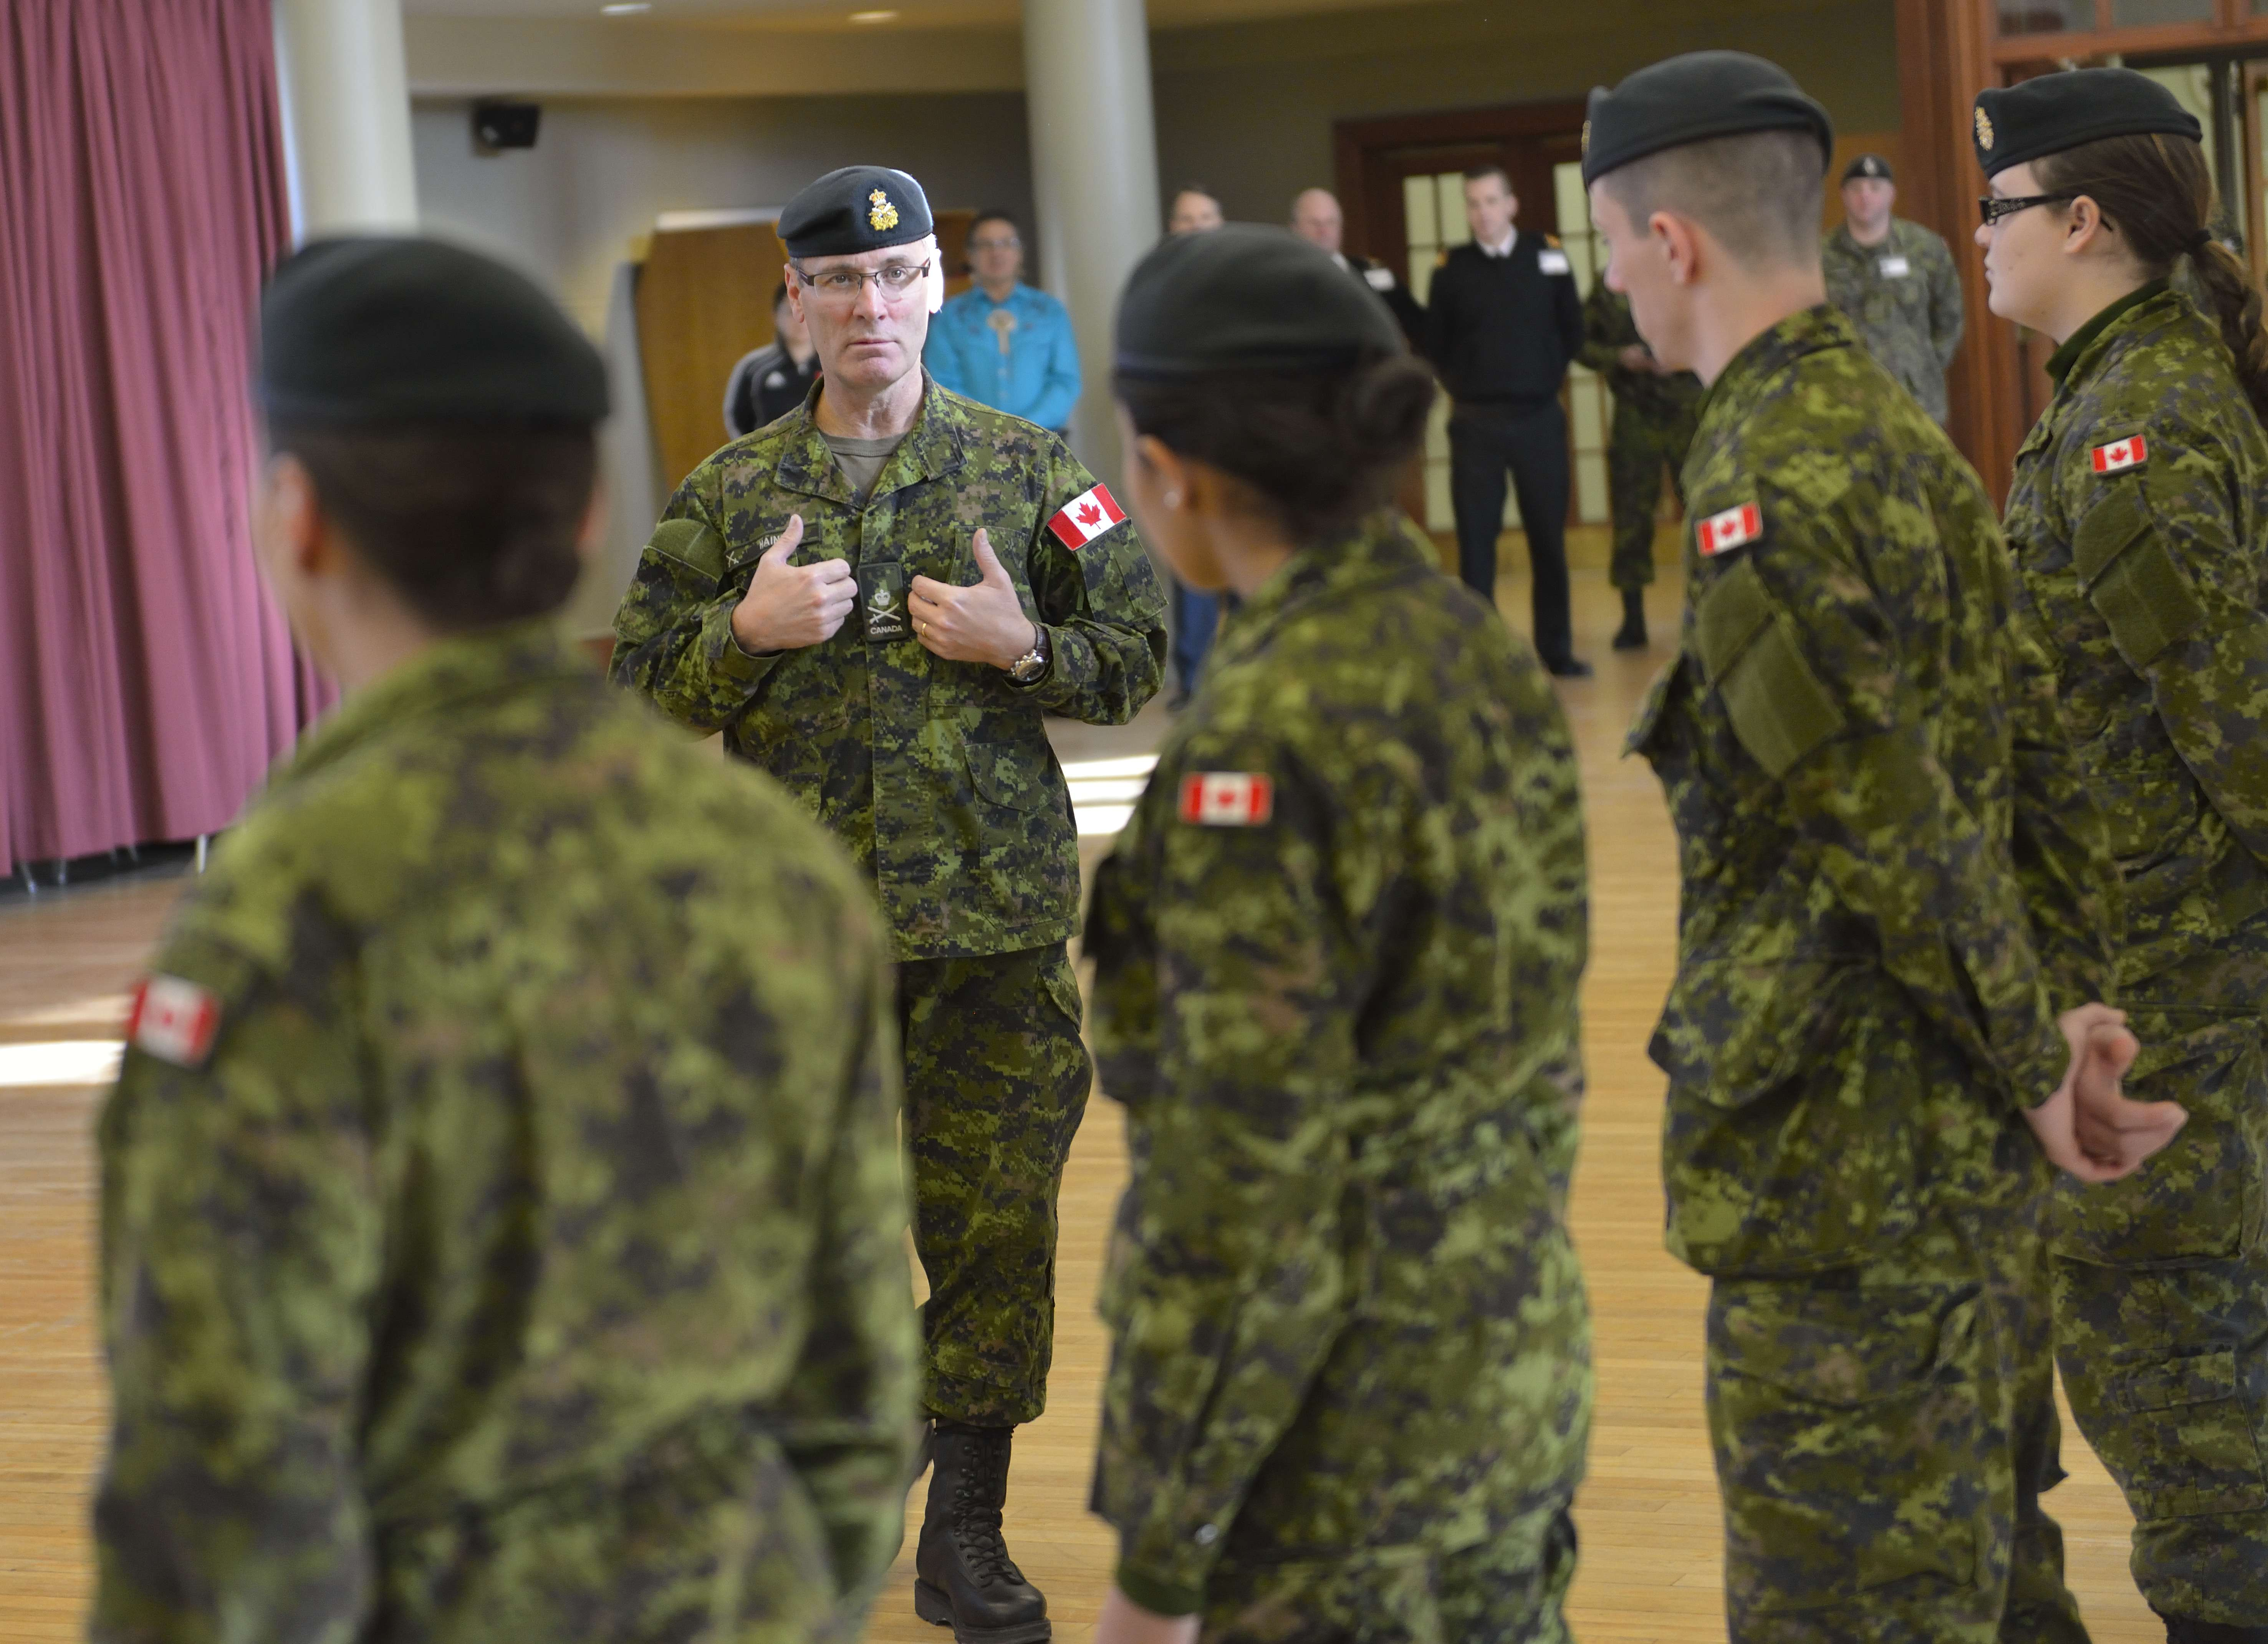 Lieutenant-General Marquis Hainse, Commander Canadian Army, visits the students on the Aboriginal Leadership Opportunity Year at the Royal Military College in Kingston, Ontario on December 2, 2014. hoto by: MCpl Kurt Visser, Directorate of Army Public Affairs